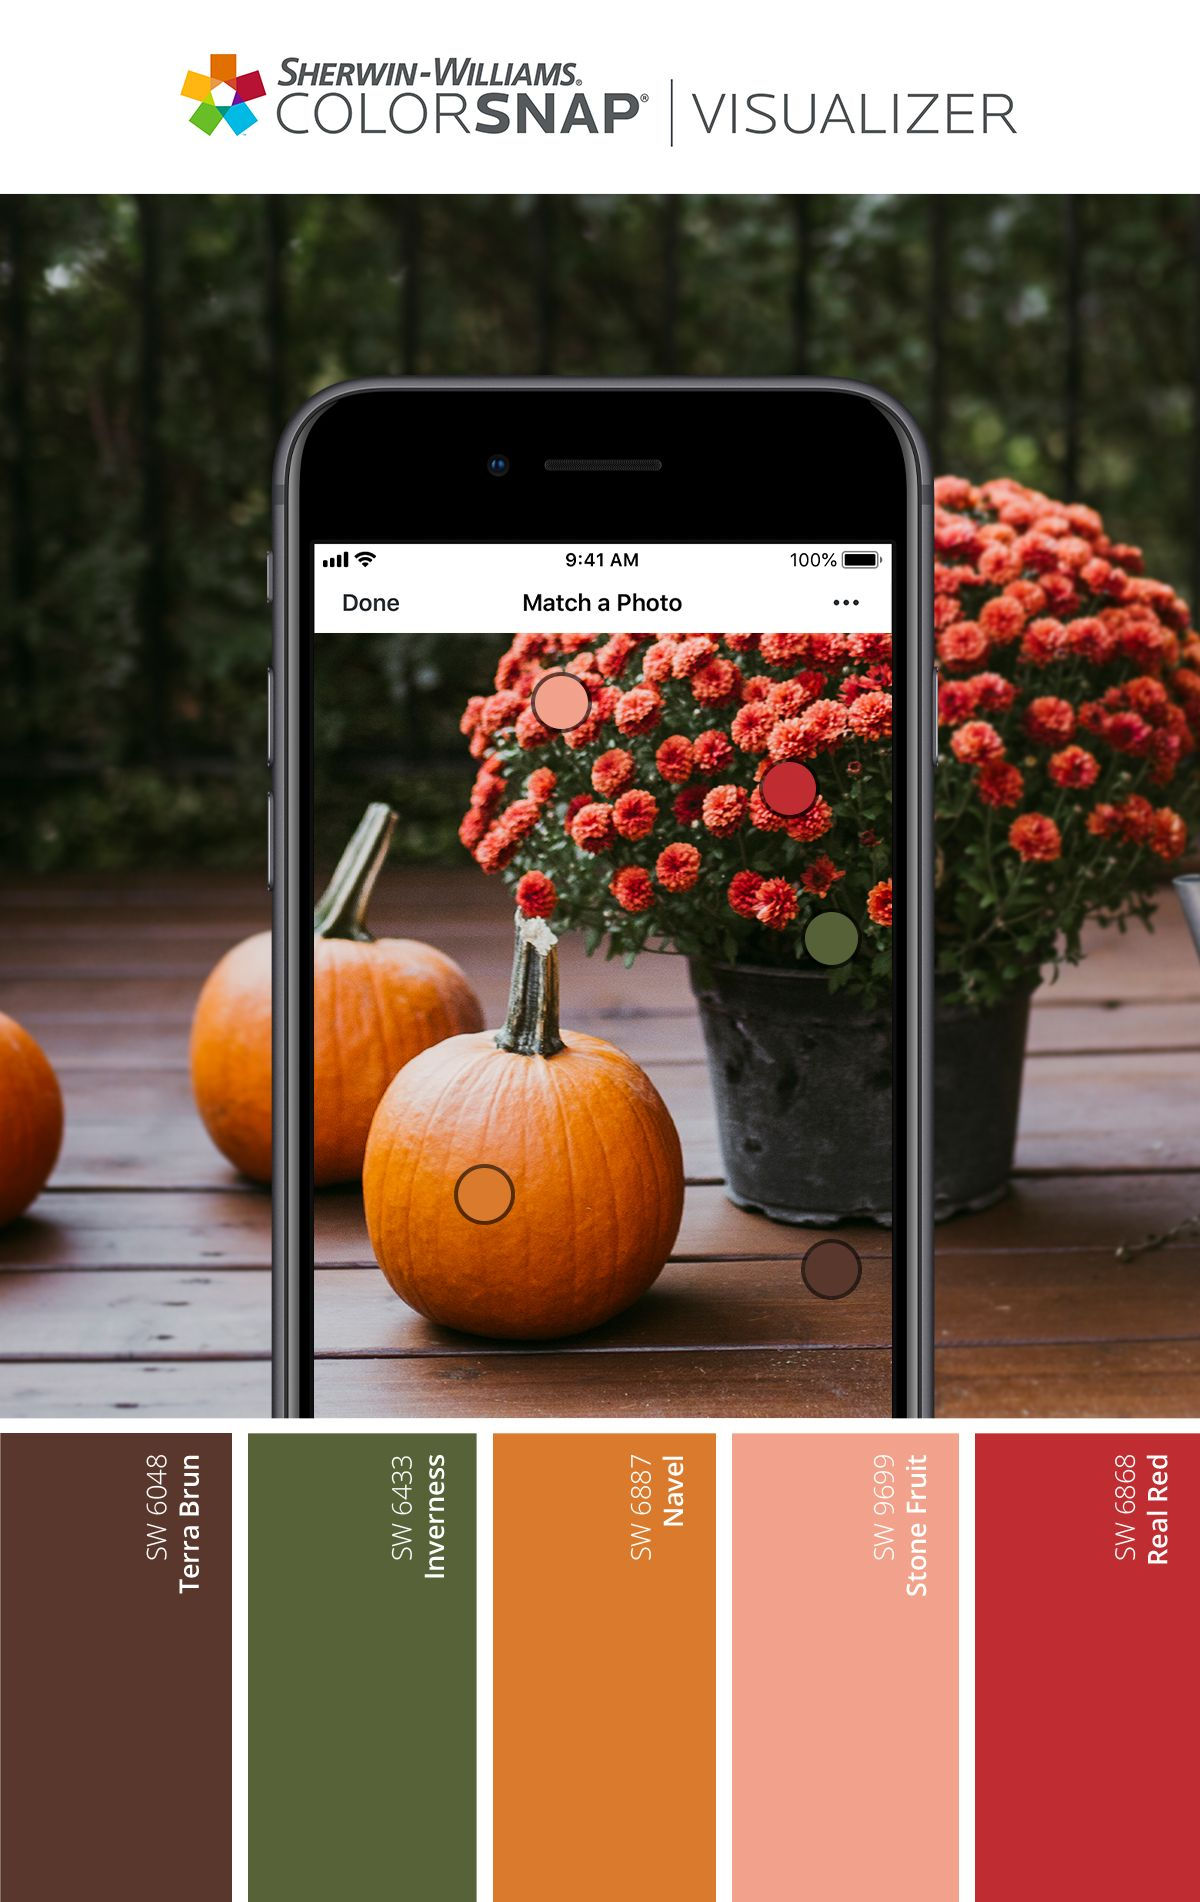 Festive Fall Inspired Paint Palette Sherwin Williams Paint Color App Paint Color Inspiration Matching Paint Colors